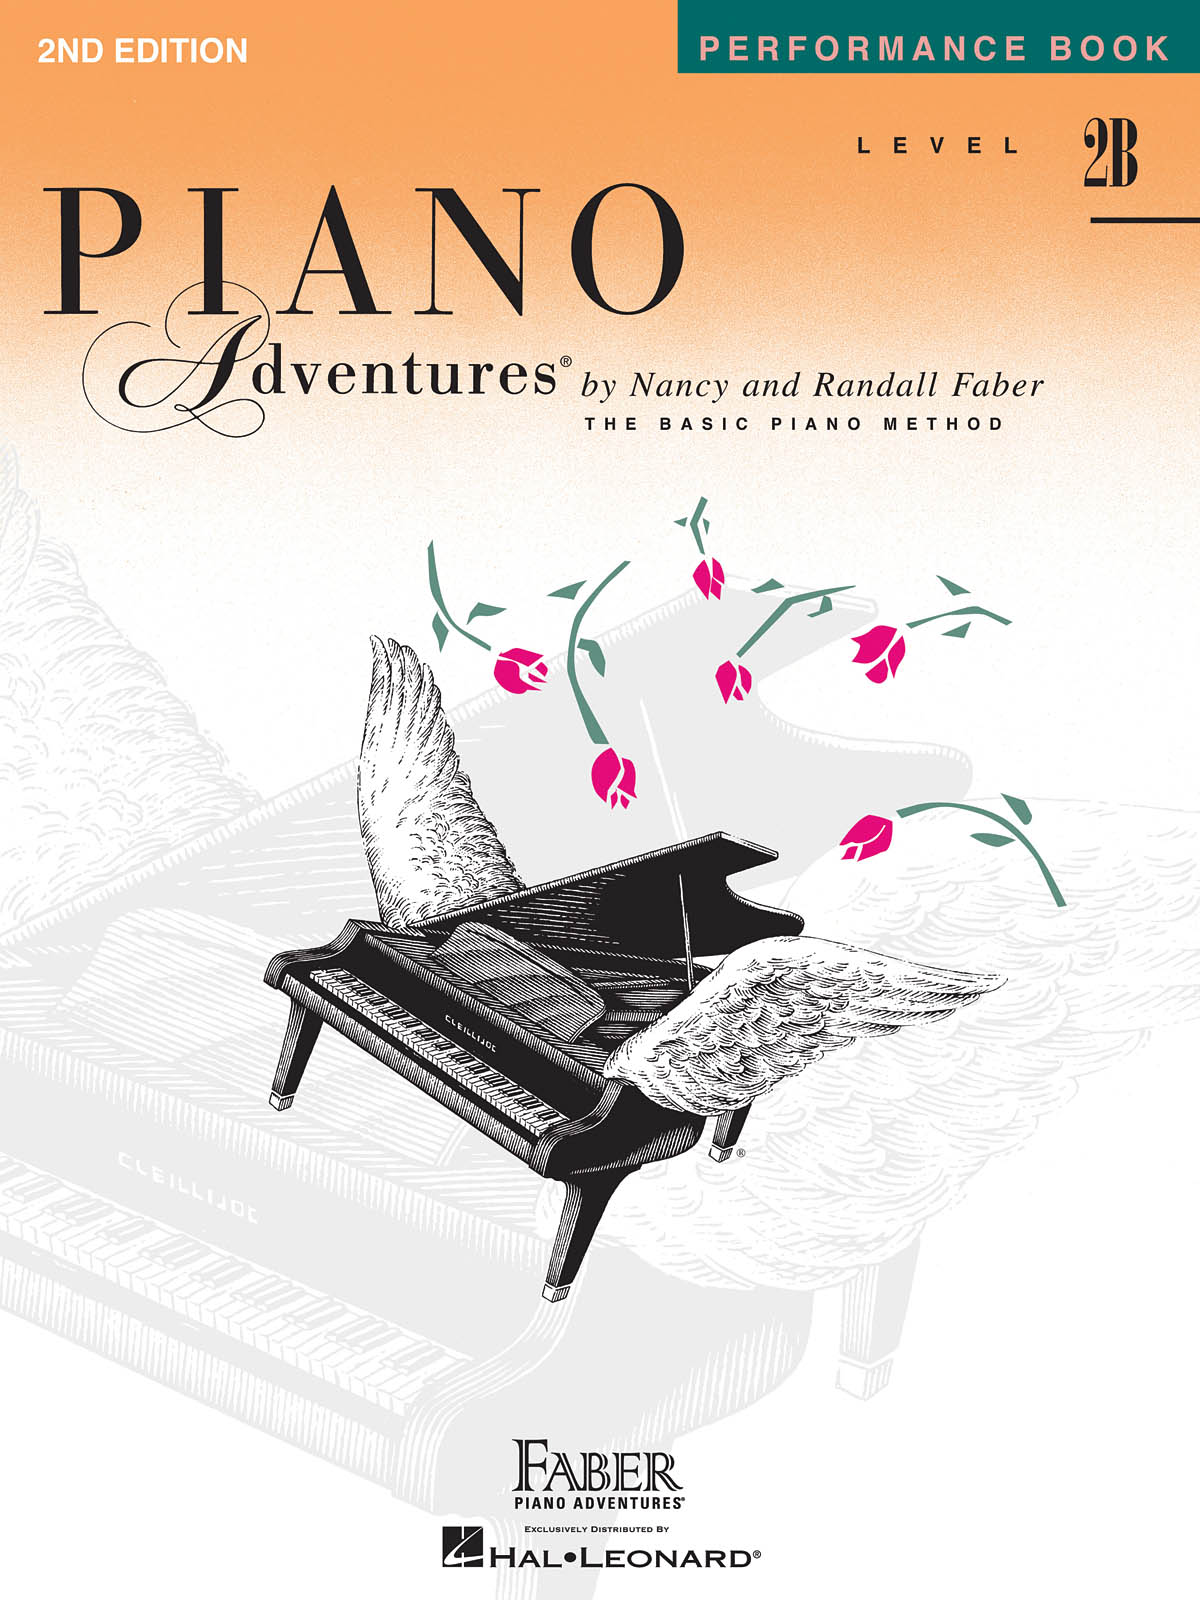 Faber Piano Adventures, Performance Book, Level 2B